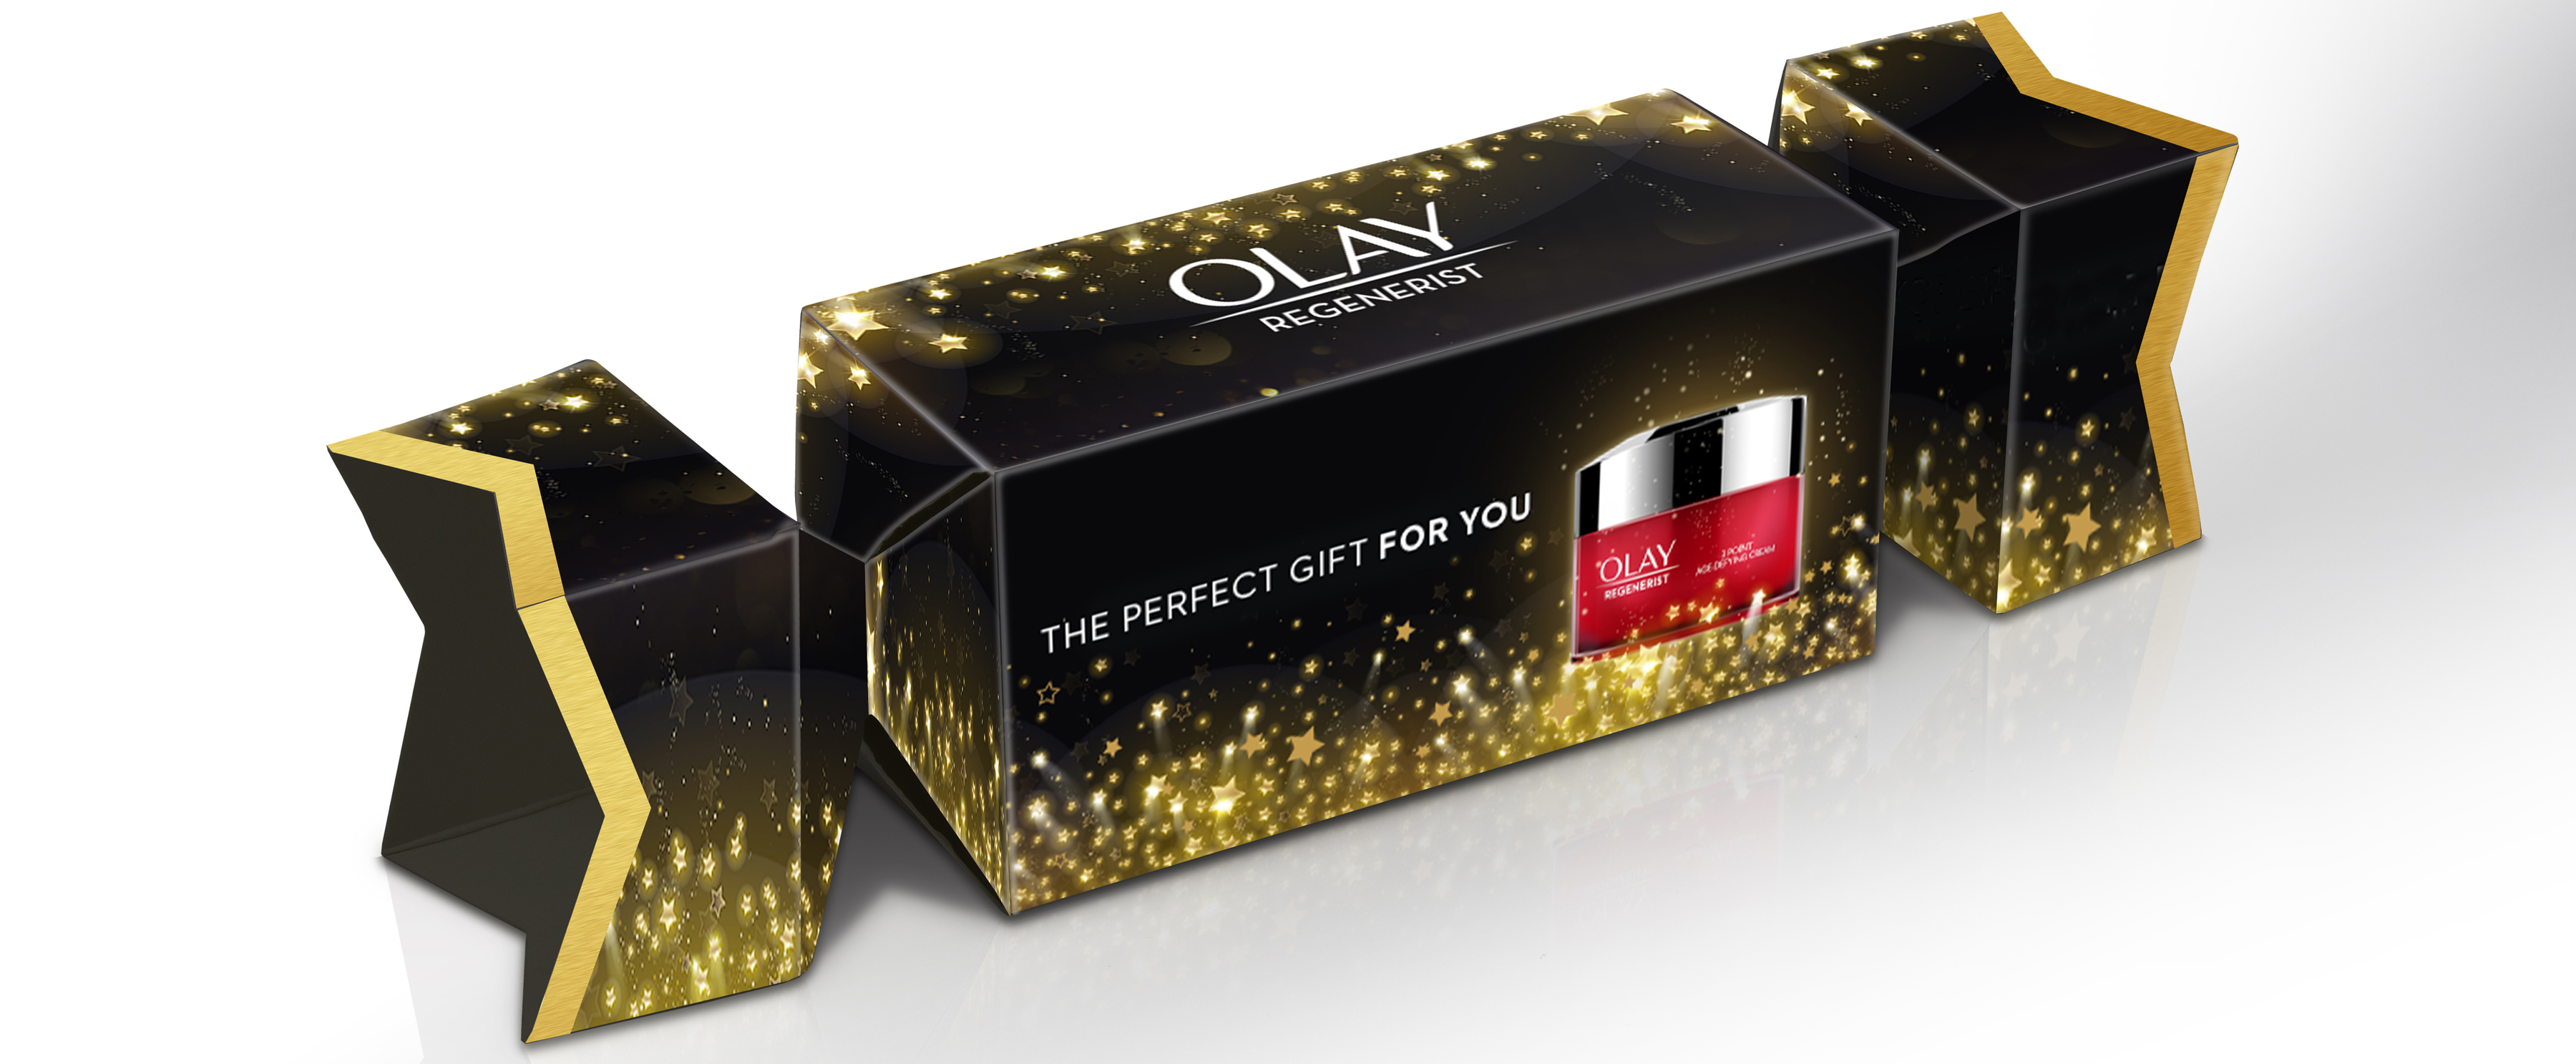 Olay Regenerist 3 Point Day Cream Christmas Cracker